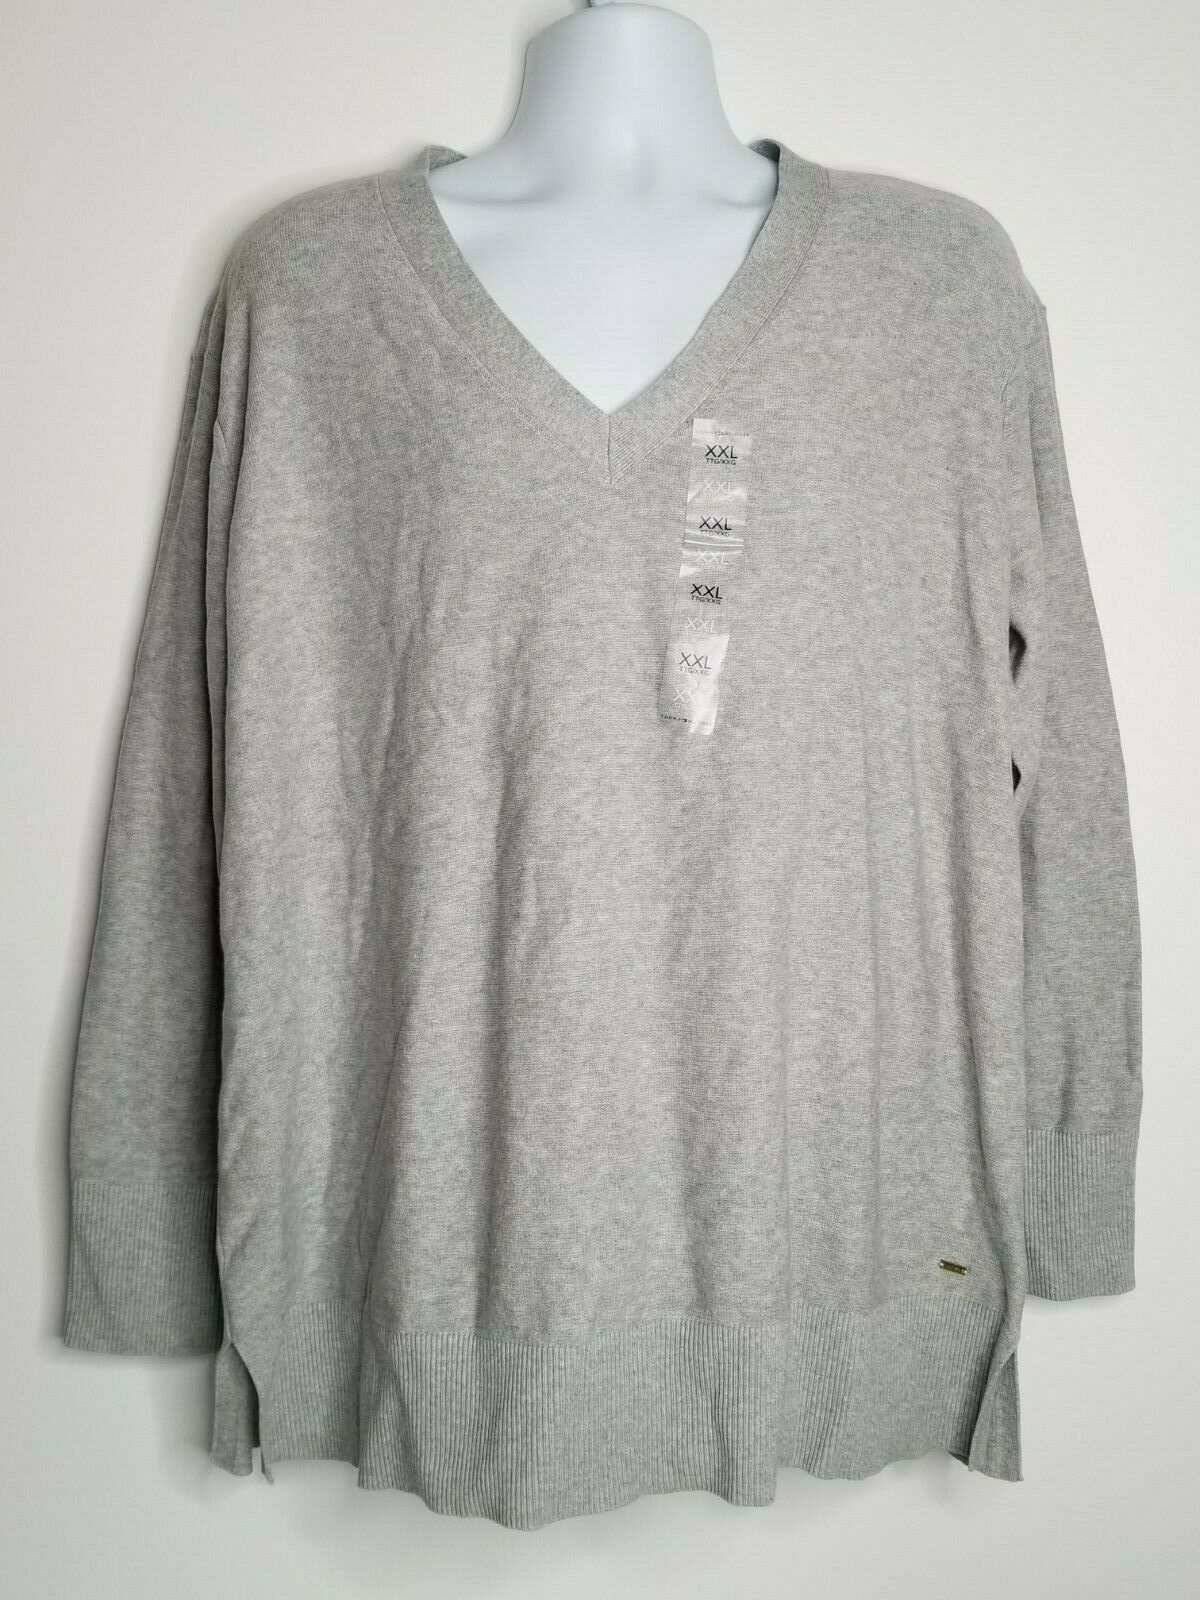 Primary image for Tommy Hilfiger Women's Grey V Neck Sweater Pullover XXL Long Sleeve NWT 982264